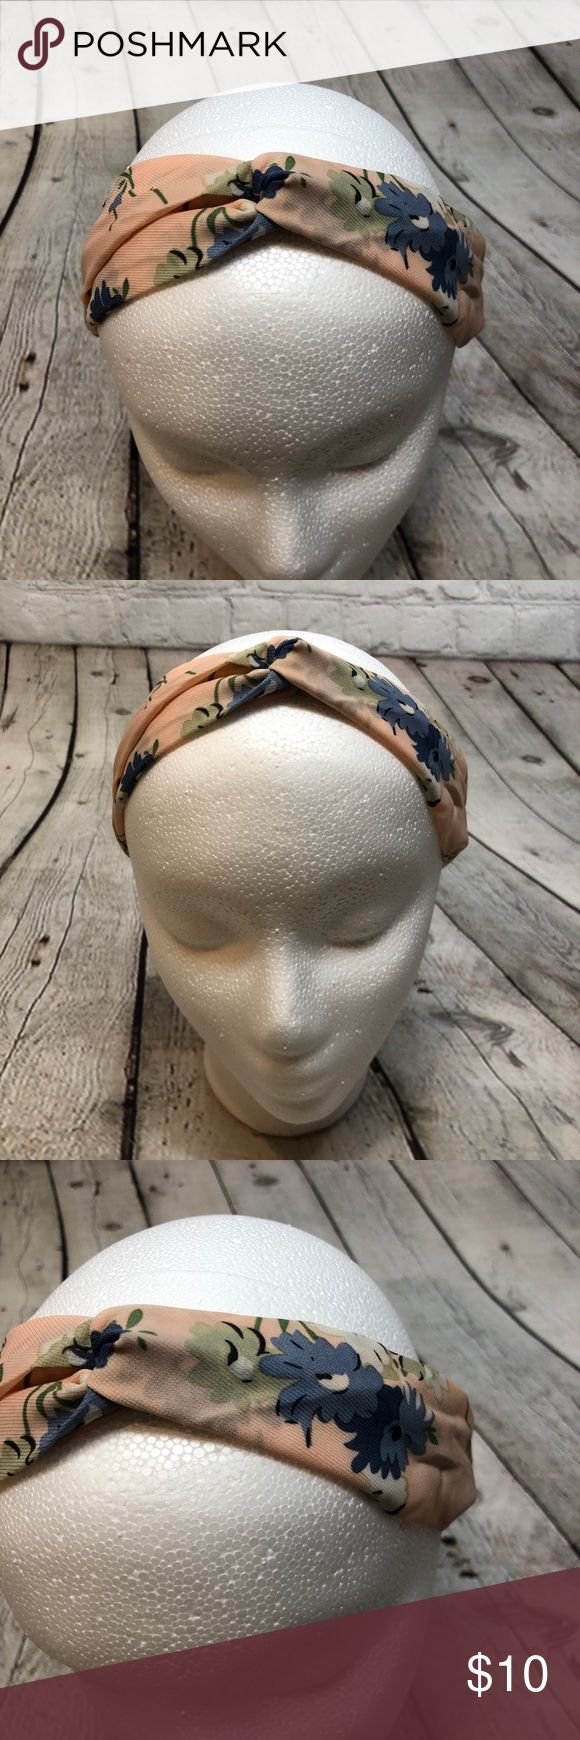 Knotted Boho Headband Pink Floral Flowers This knotted headband is super cute. It has elastic inside the fabric and it's stretchy and comfortable. T...